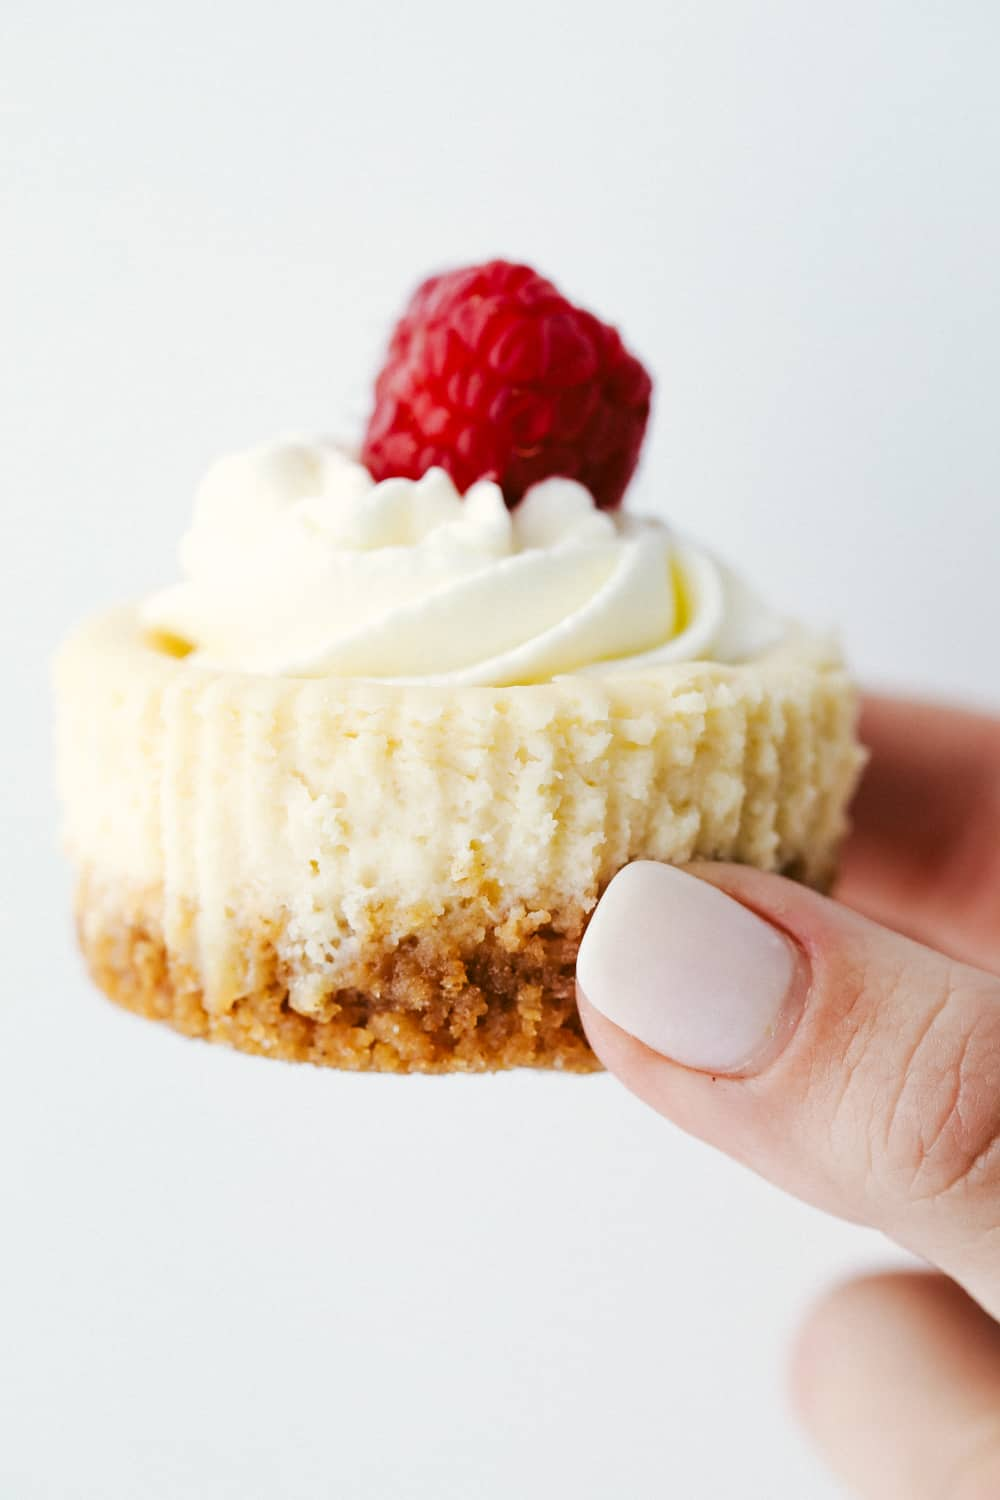 Hand holding a mini cheesecake with whipped topping and a raspberry.